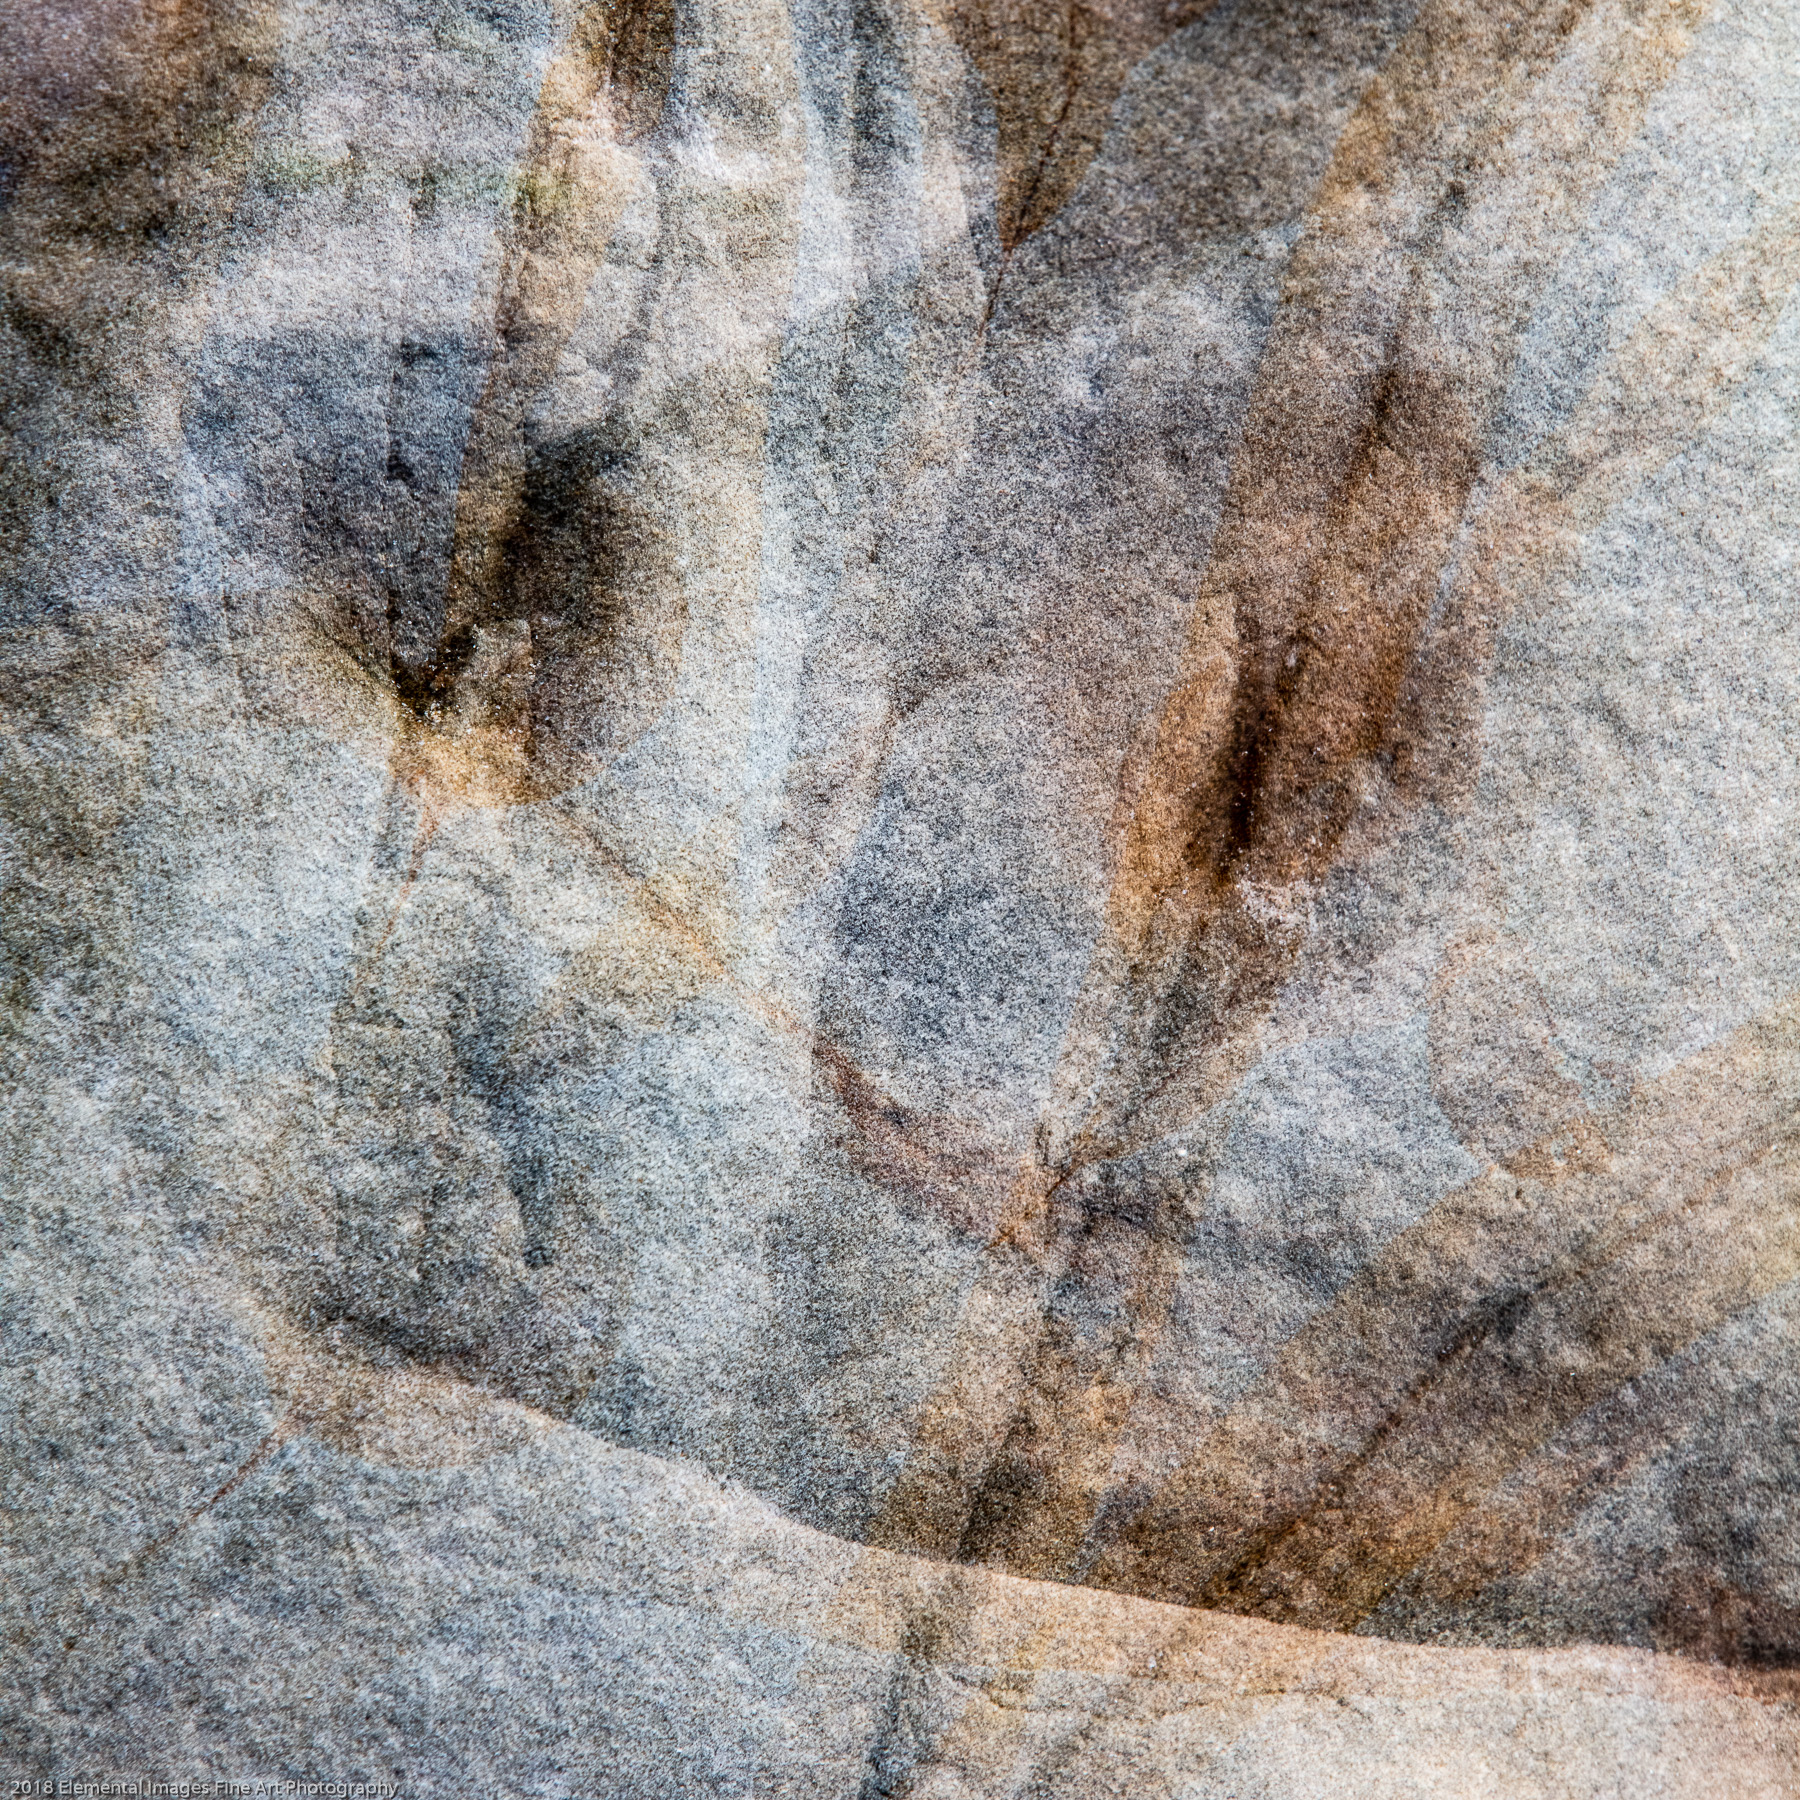 Stones #21 | Cape Meares | OR | USA - © 2018 Elemental Images Fine Art Photography - All Rights Reserved Worldwide